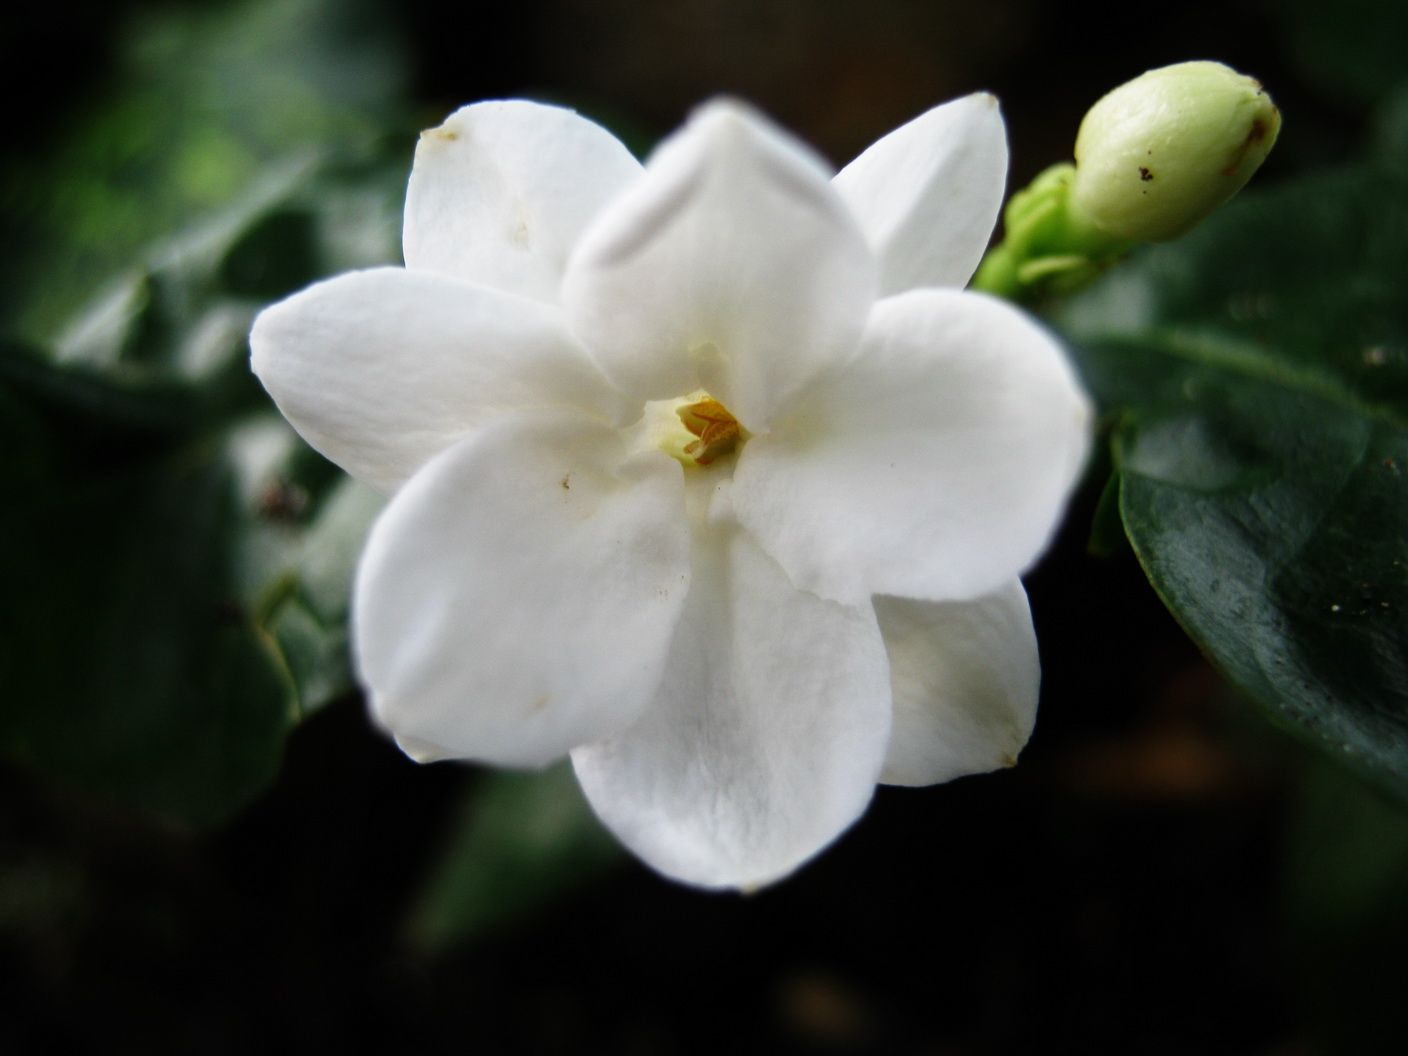 Jasmine jasmine flowers pinterest jasmine and flowers jasmine flowers are white in most species with some species being yellow flowered izmirmasajfo